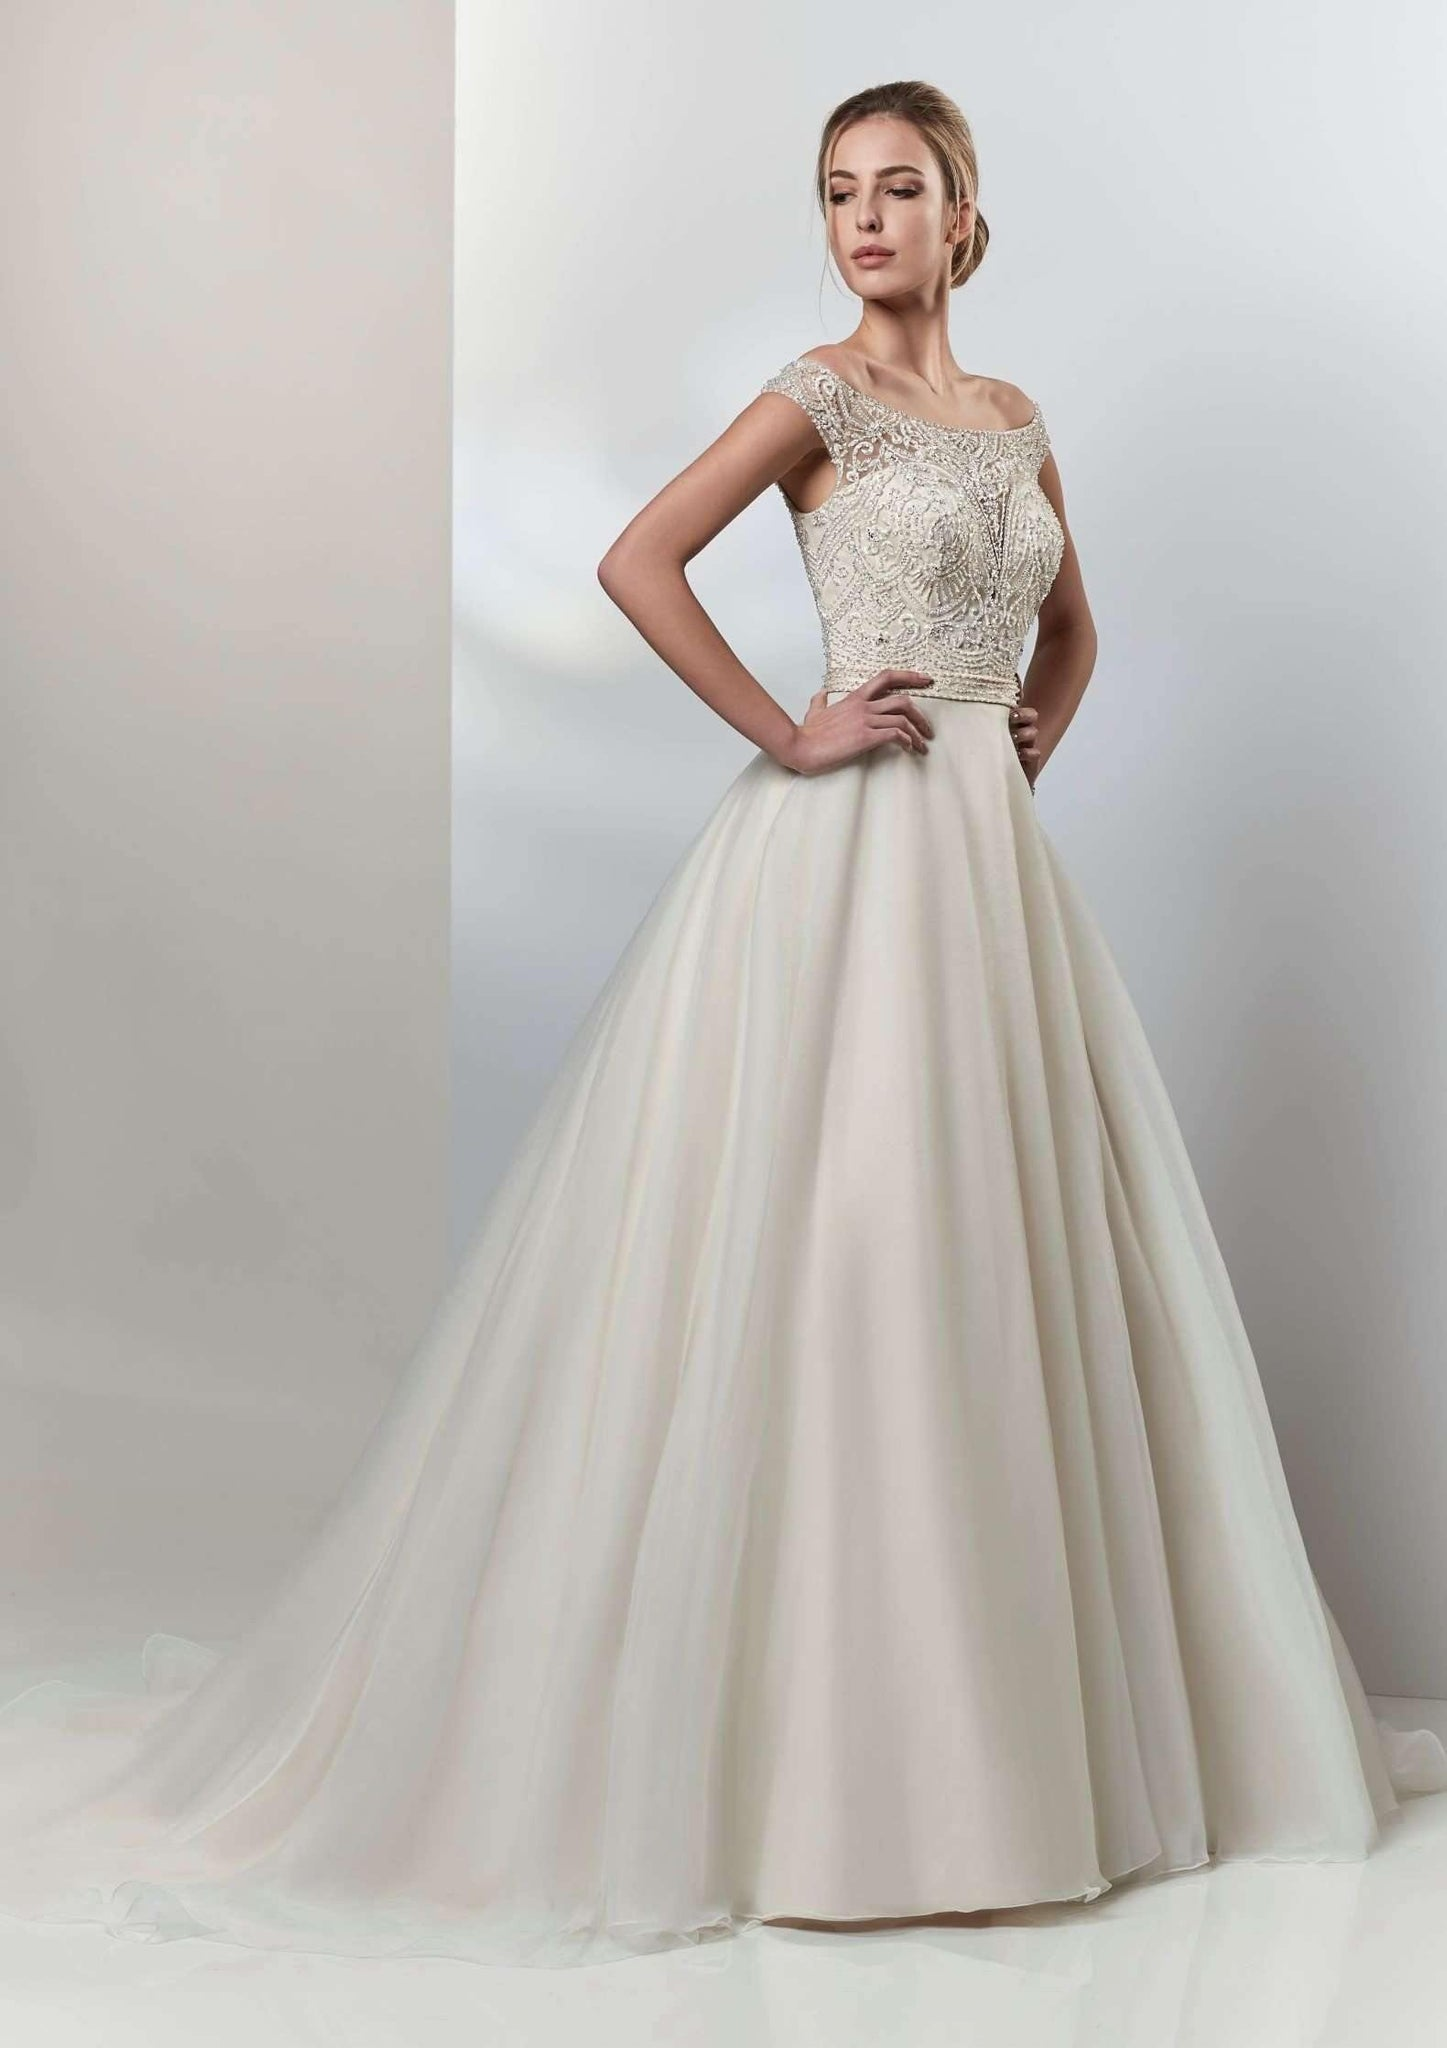 UK12 - AURORA - SALE - Adore Bridal and Occasion Wear